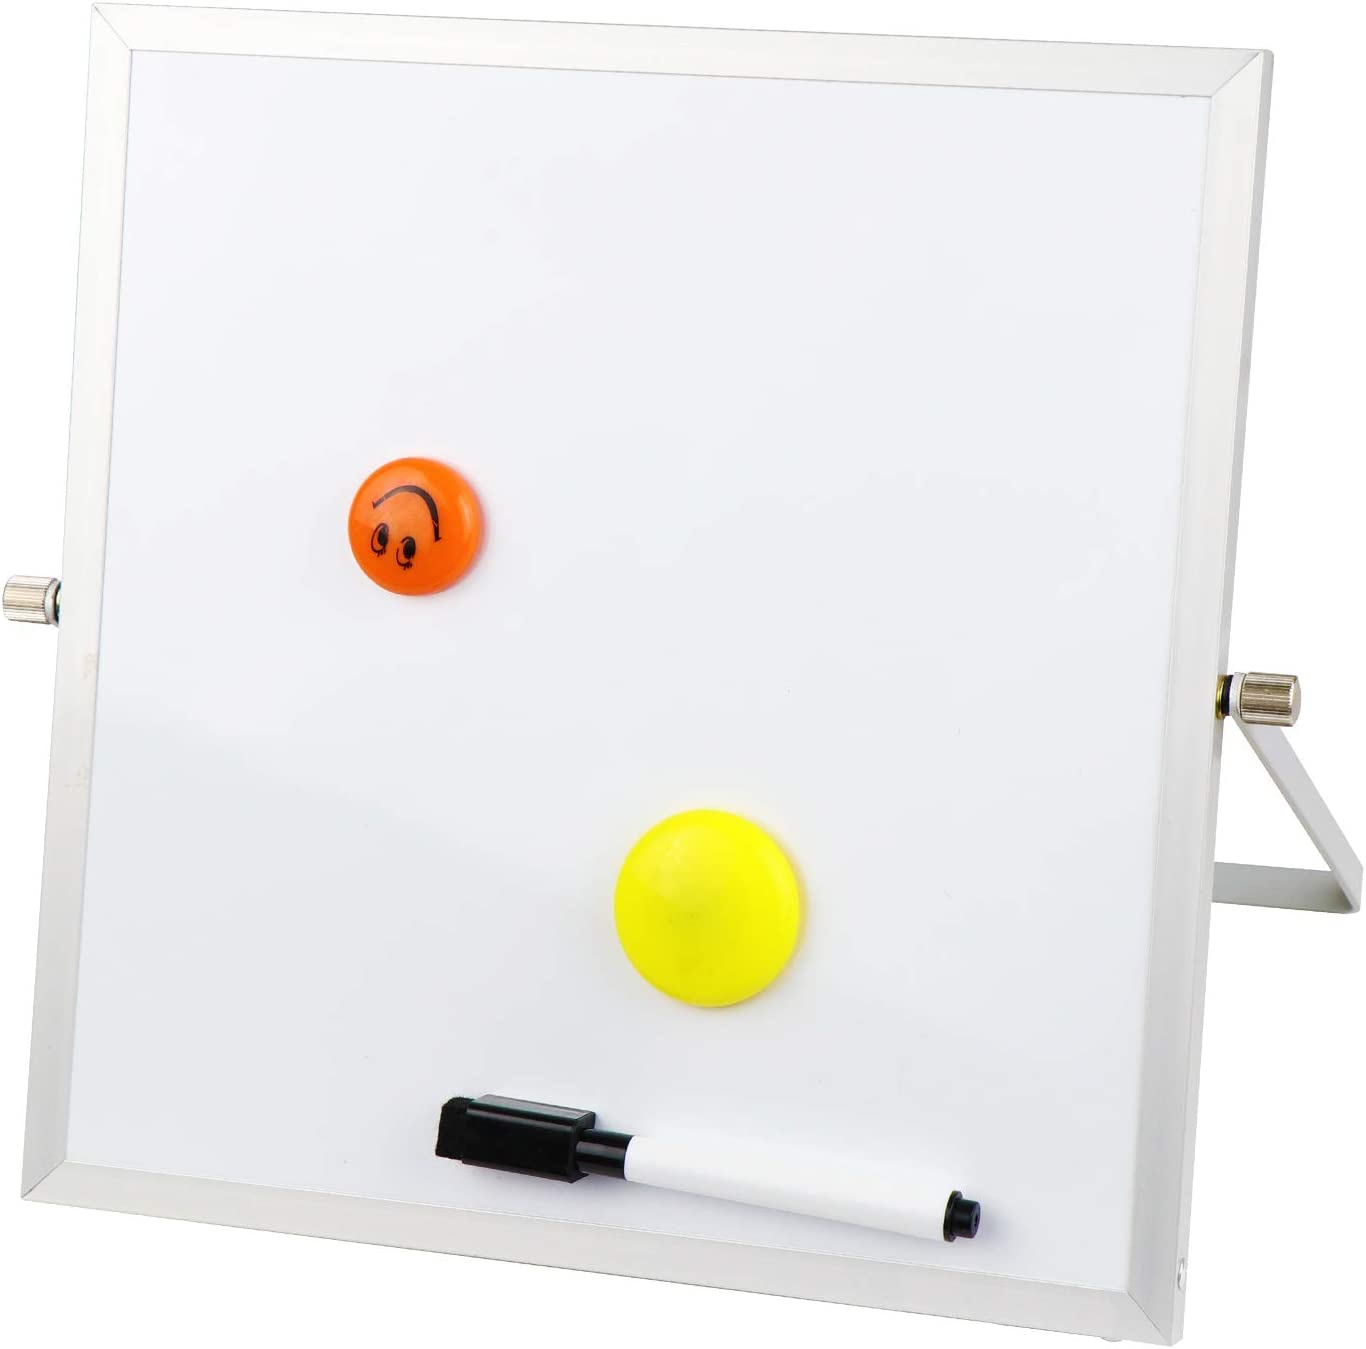 """Small Dry Erase Board 10x10"""" - Portable Mini Desktop to Do List Notepad, Magnetic White Board Easel for Office, Home, School, Locker, Kids Drawing"""